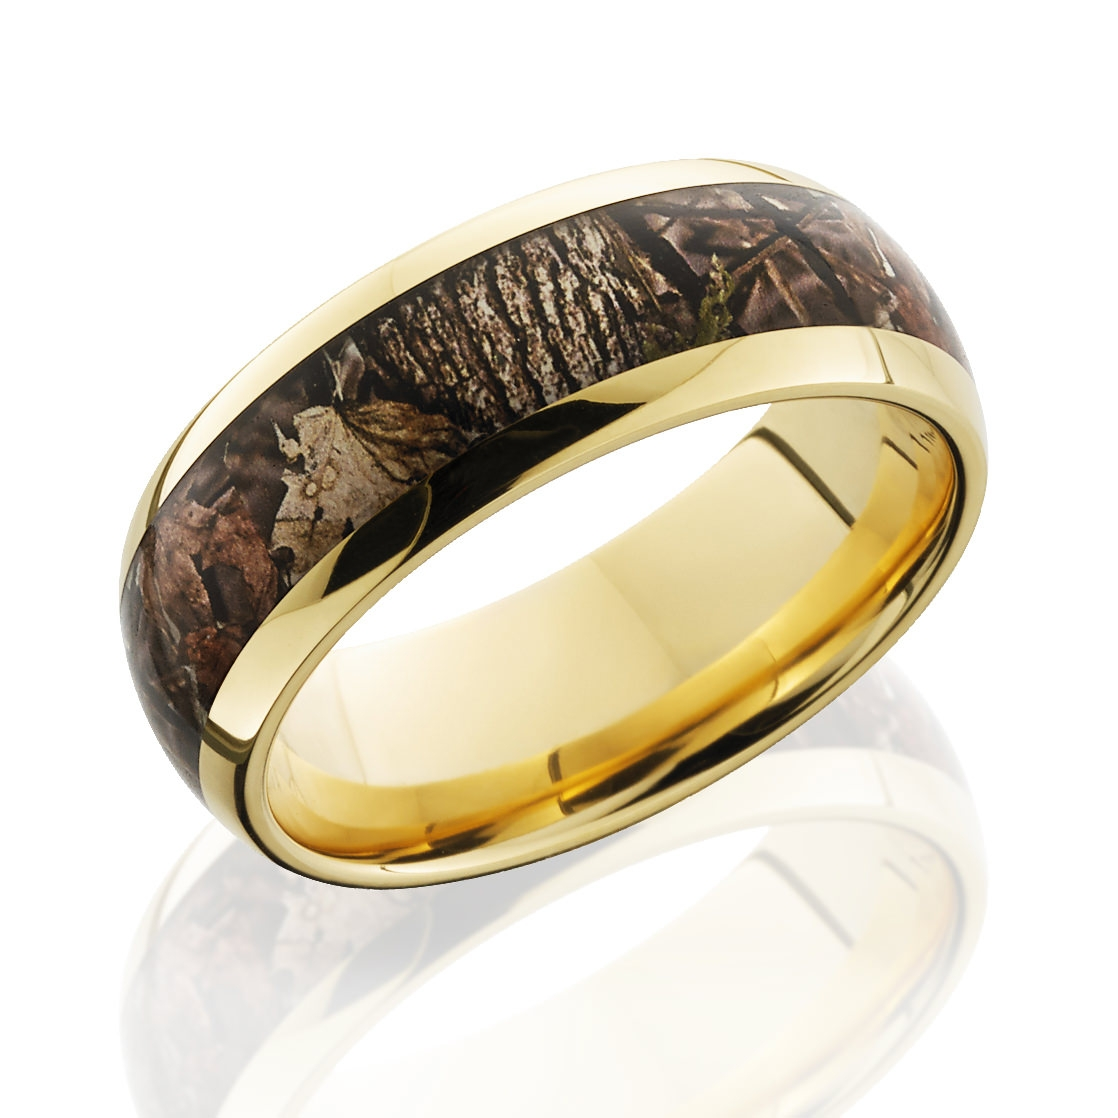 Photo Gallery of Camo Wedding Bands Viewing 14 of 15 Photos